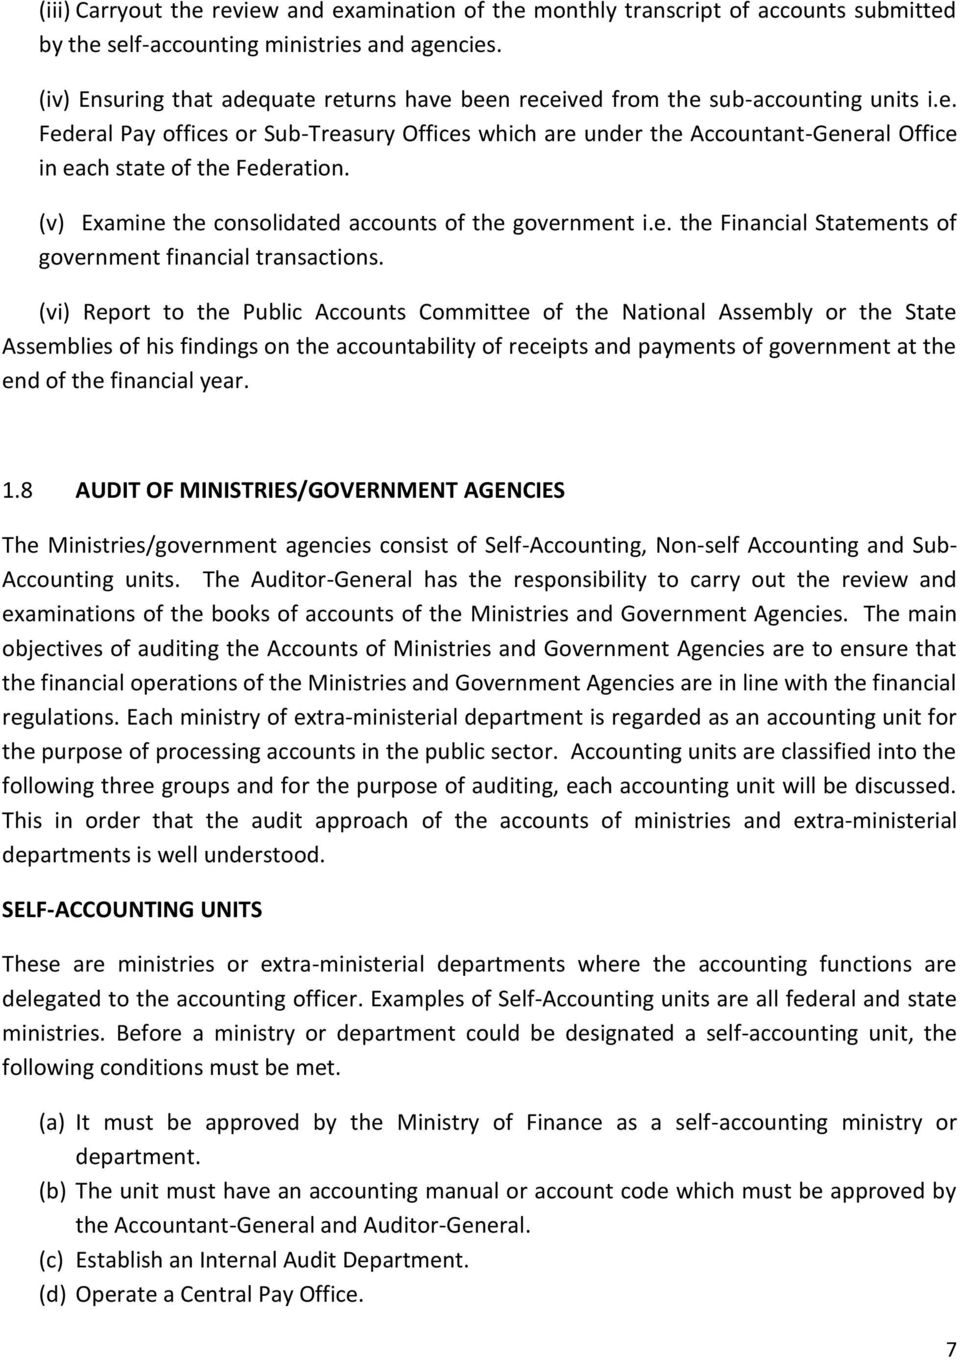 (v) Examine the consolidated accounts of the government i.e. the Financial Statements of government financial transactions.